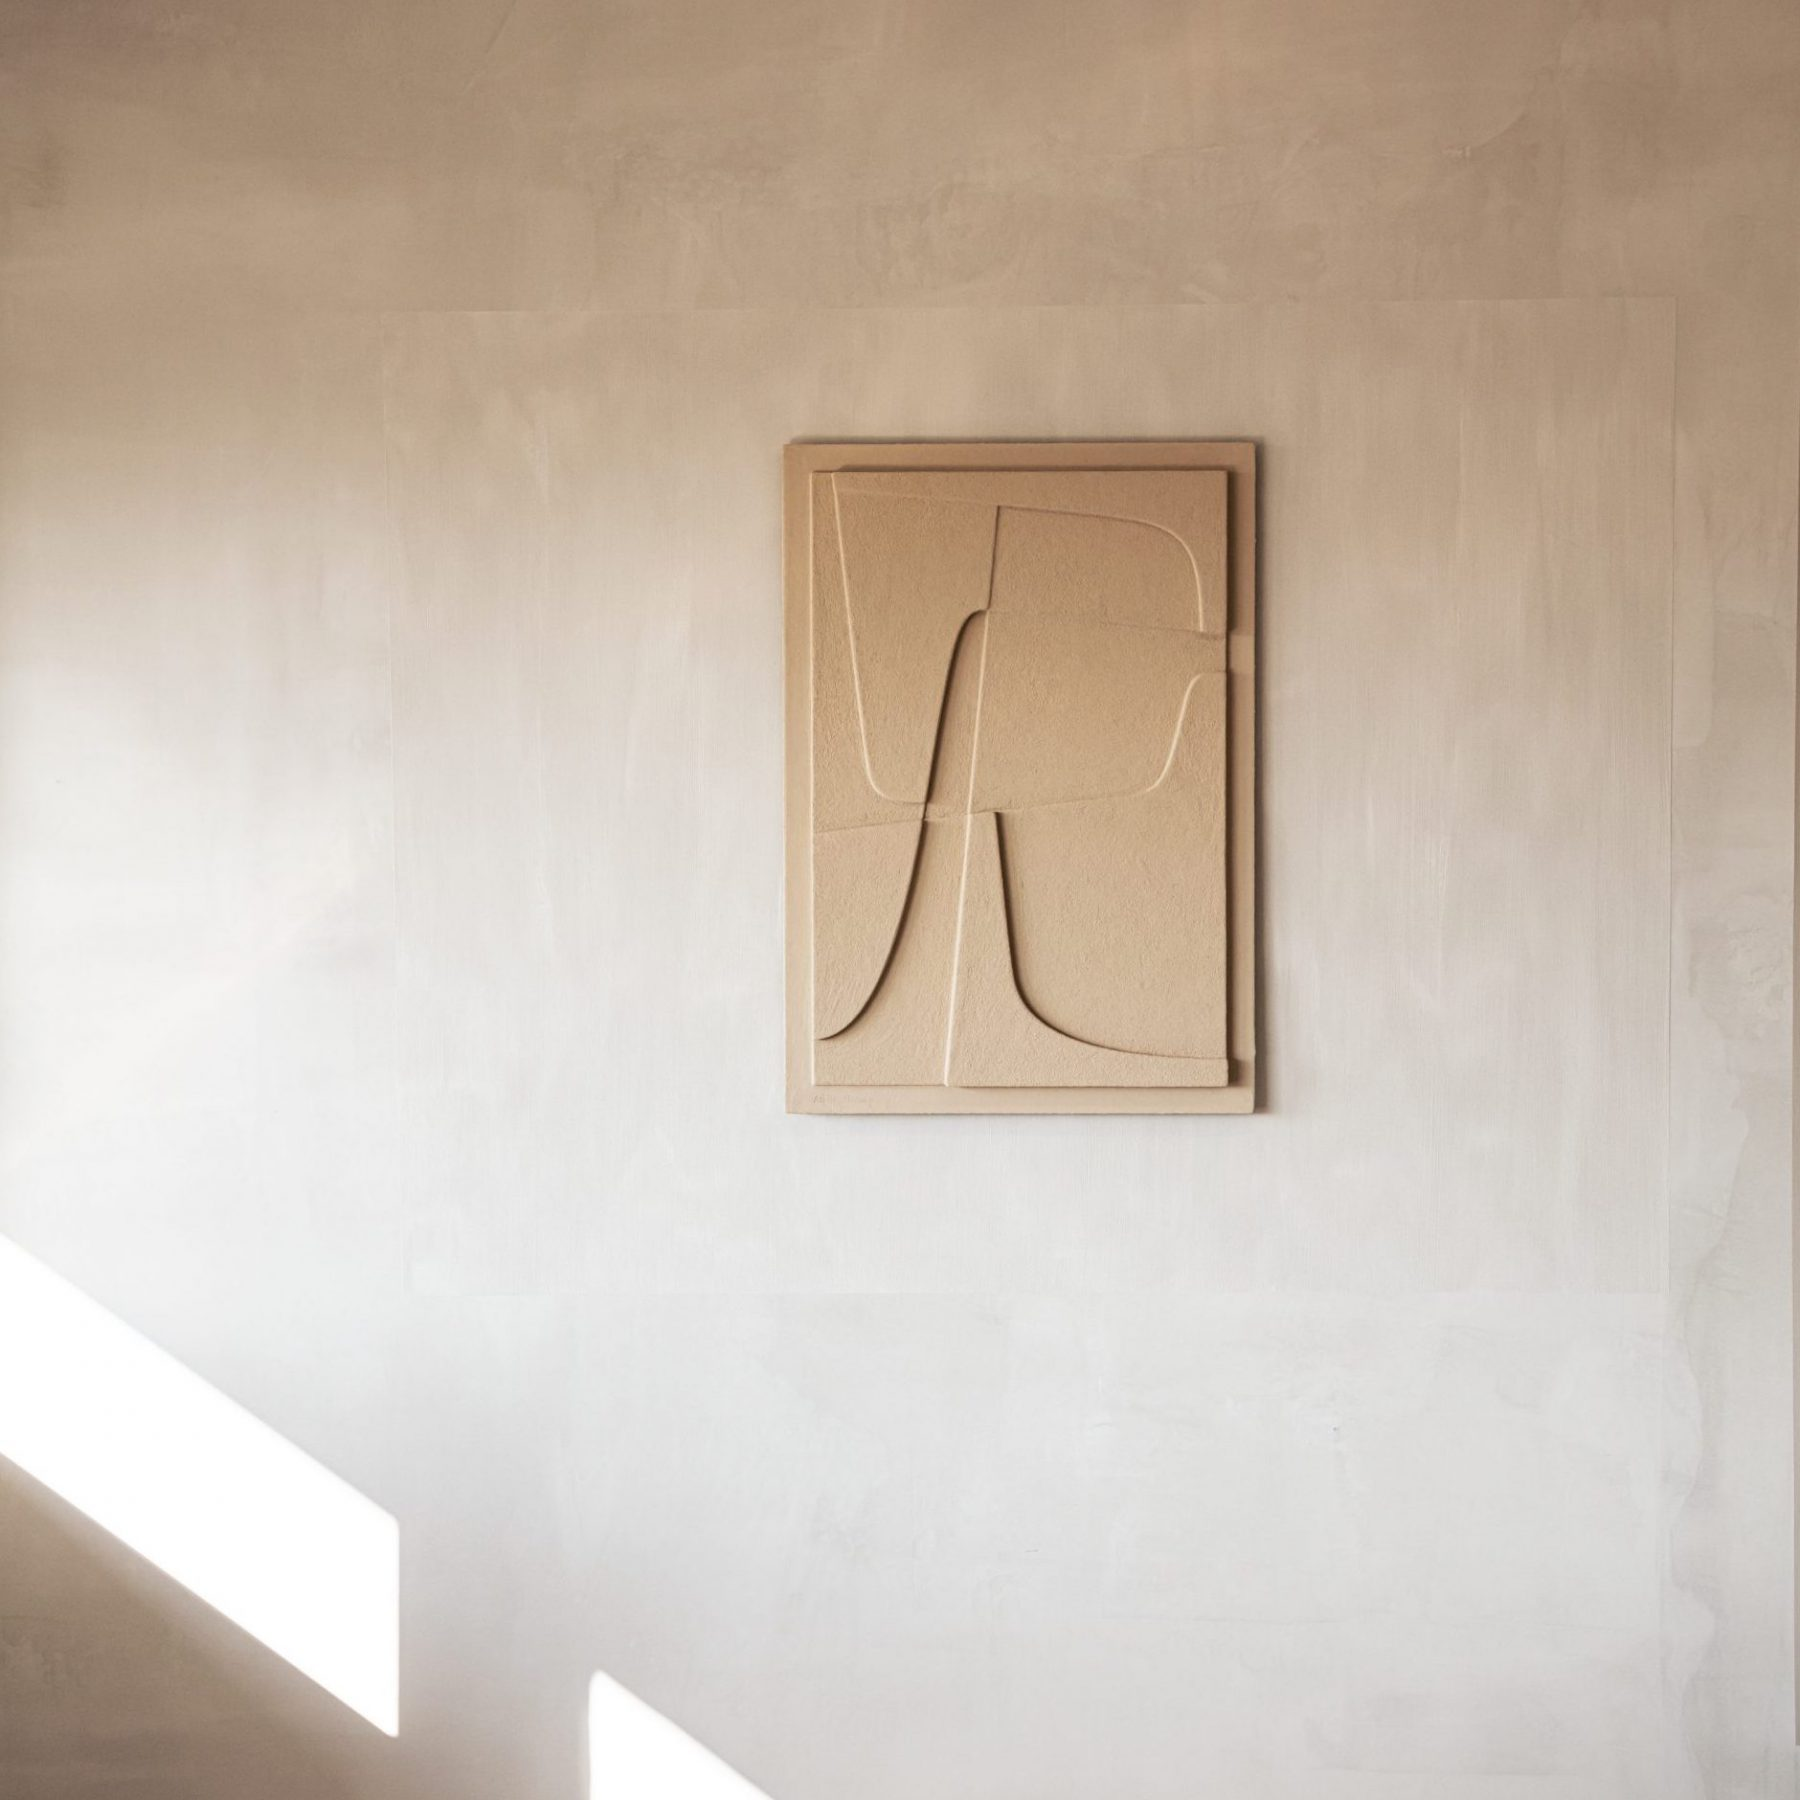 Atelier-Plateau-Beyond-The-Surface-Wall-Relief